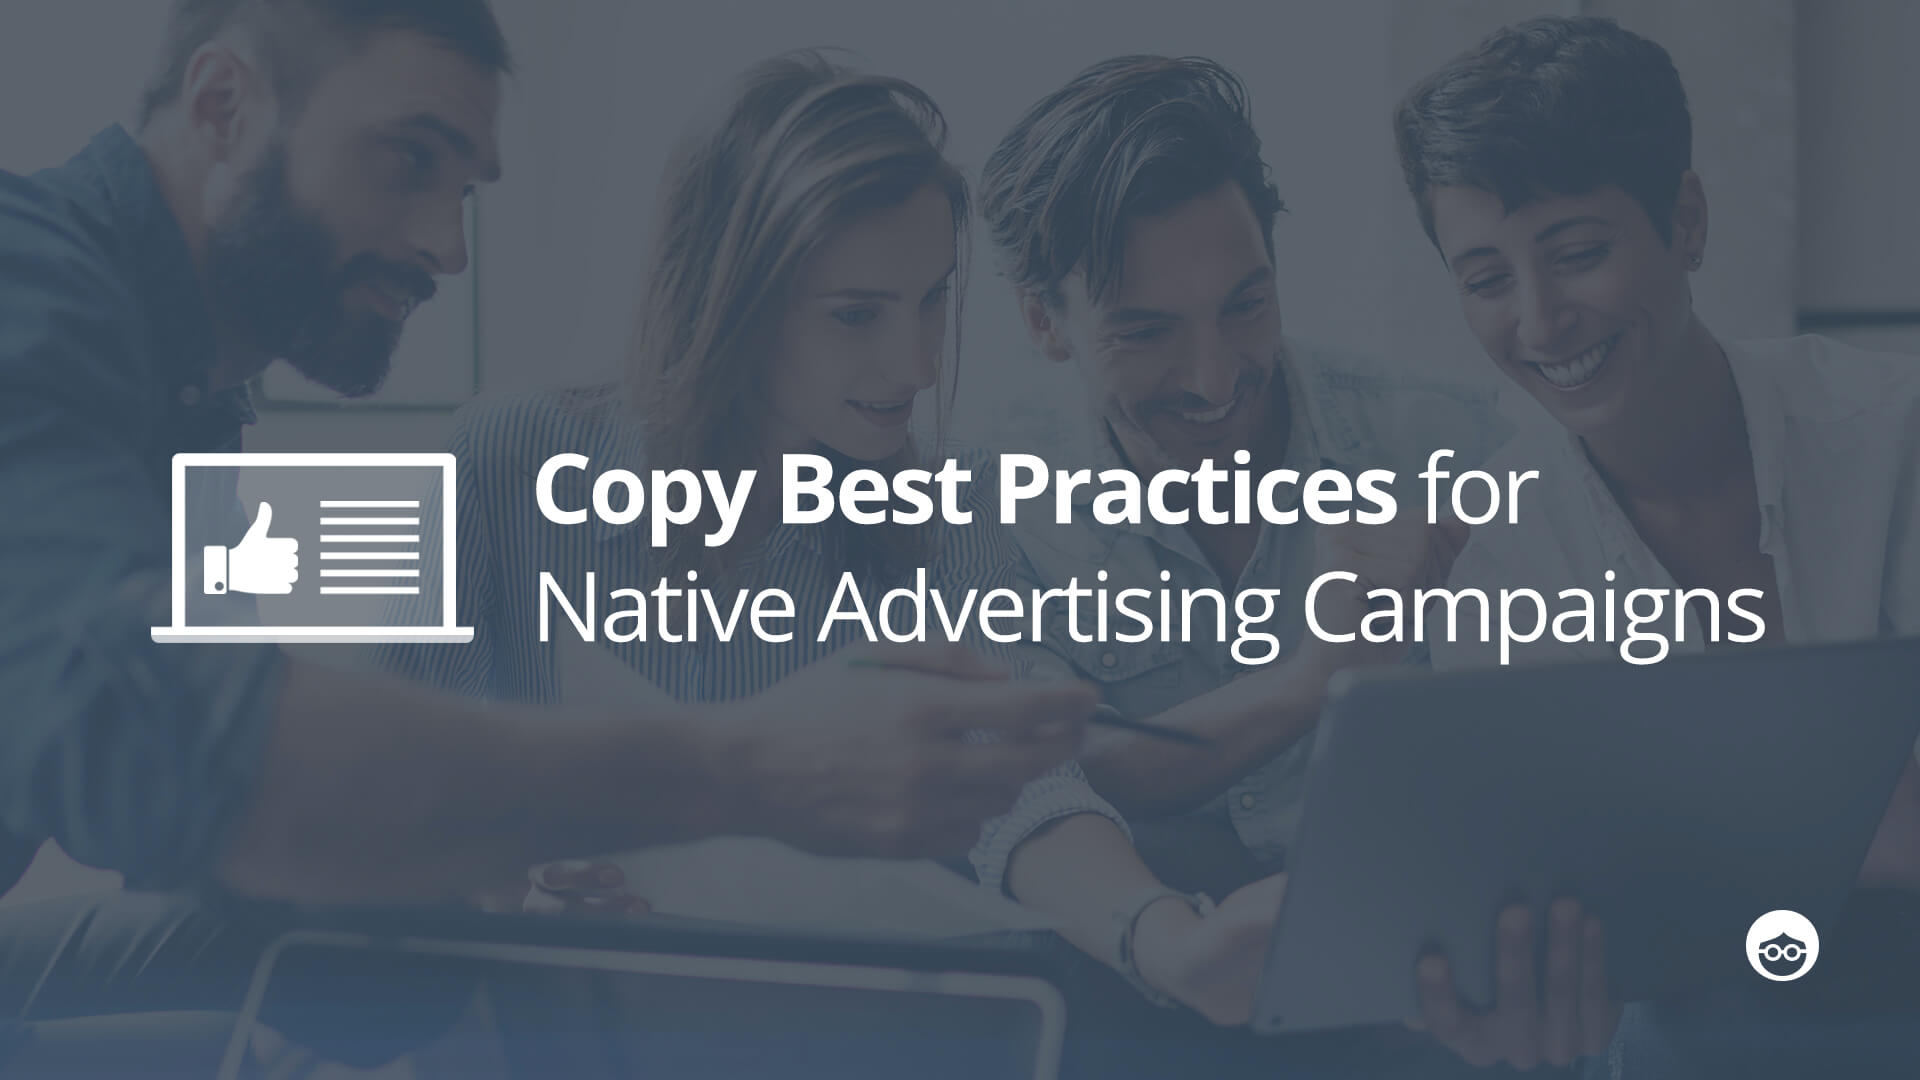 Do's and Don'ts for Native Advertising Campaigns